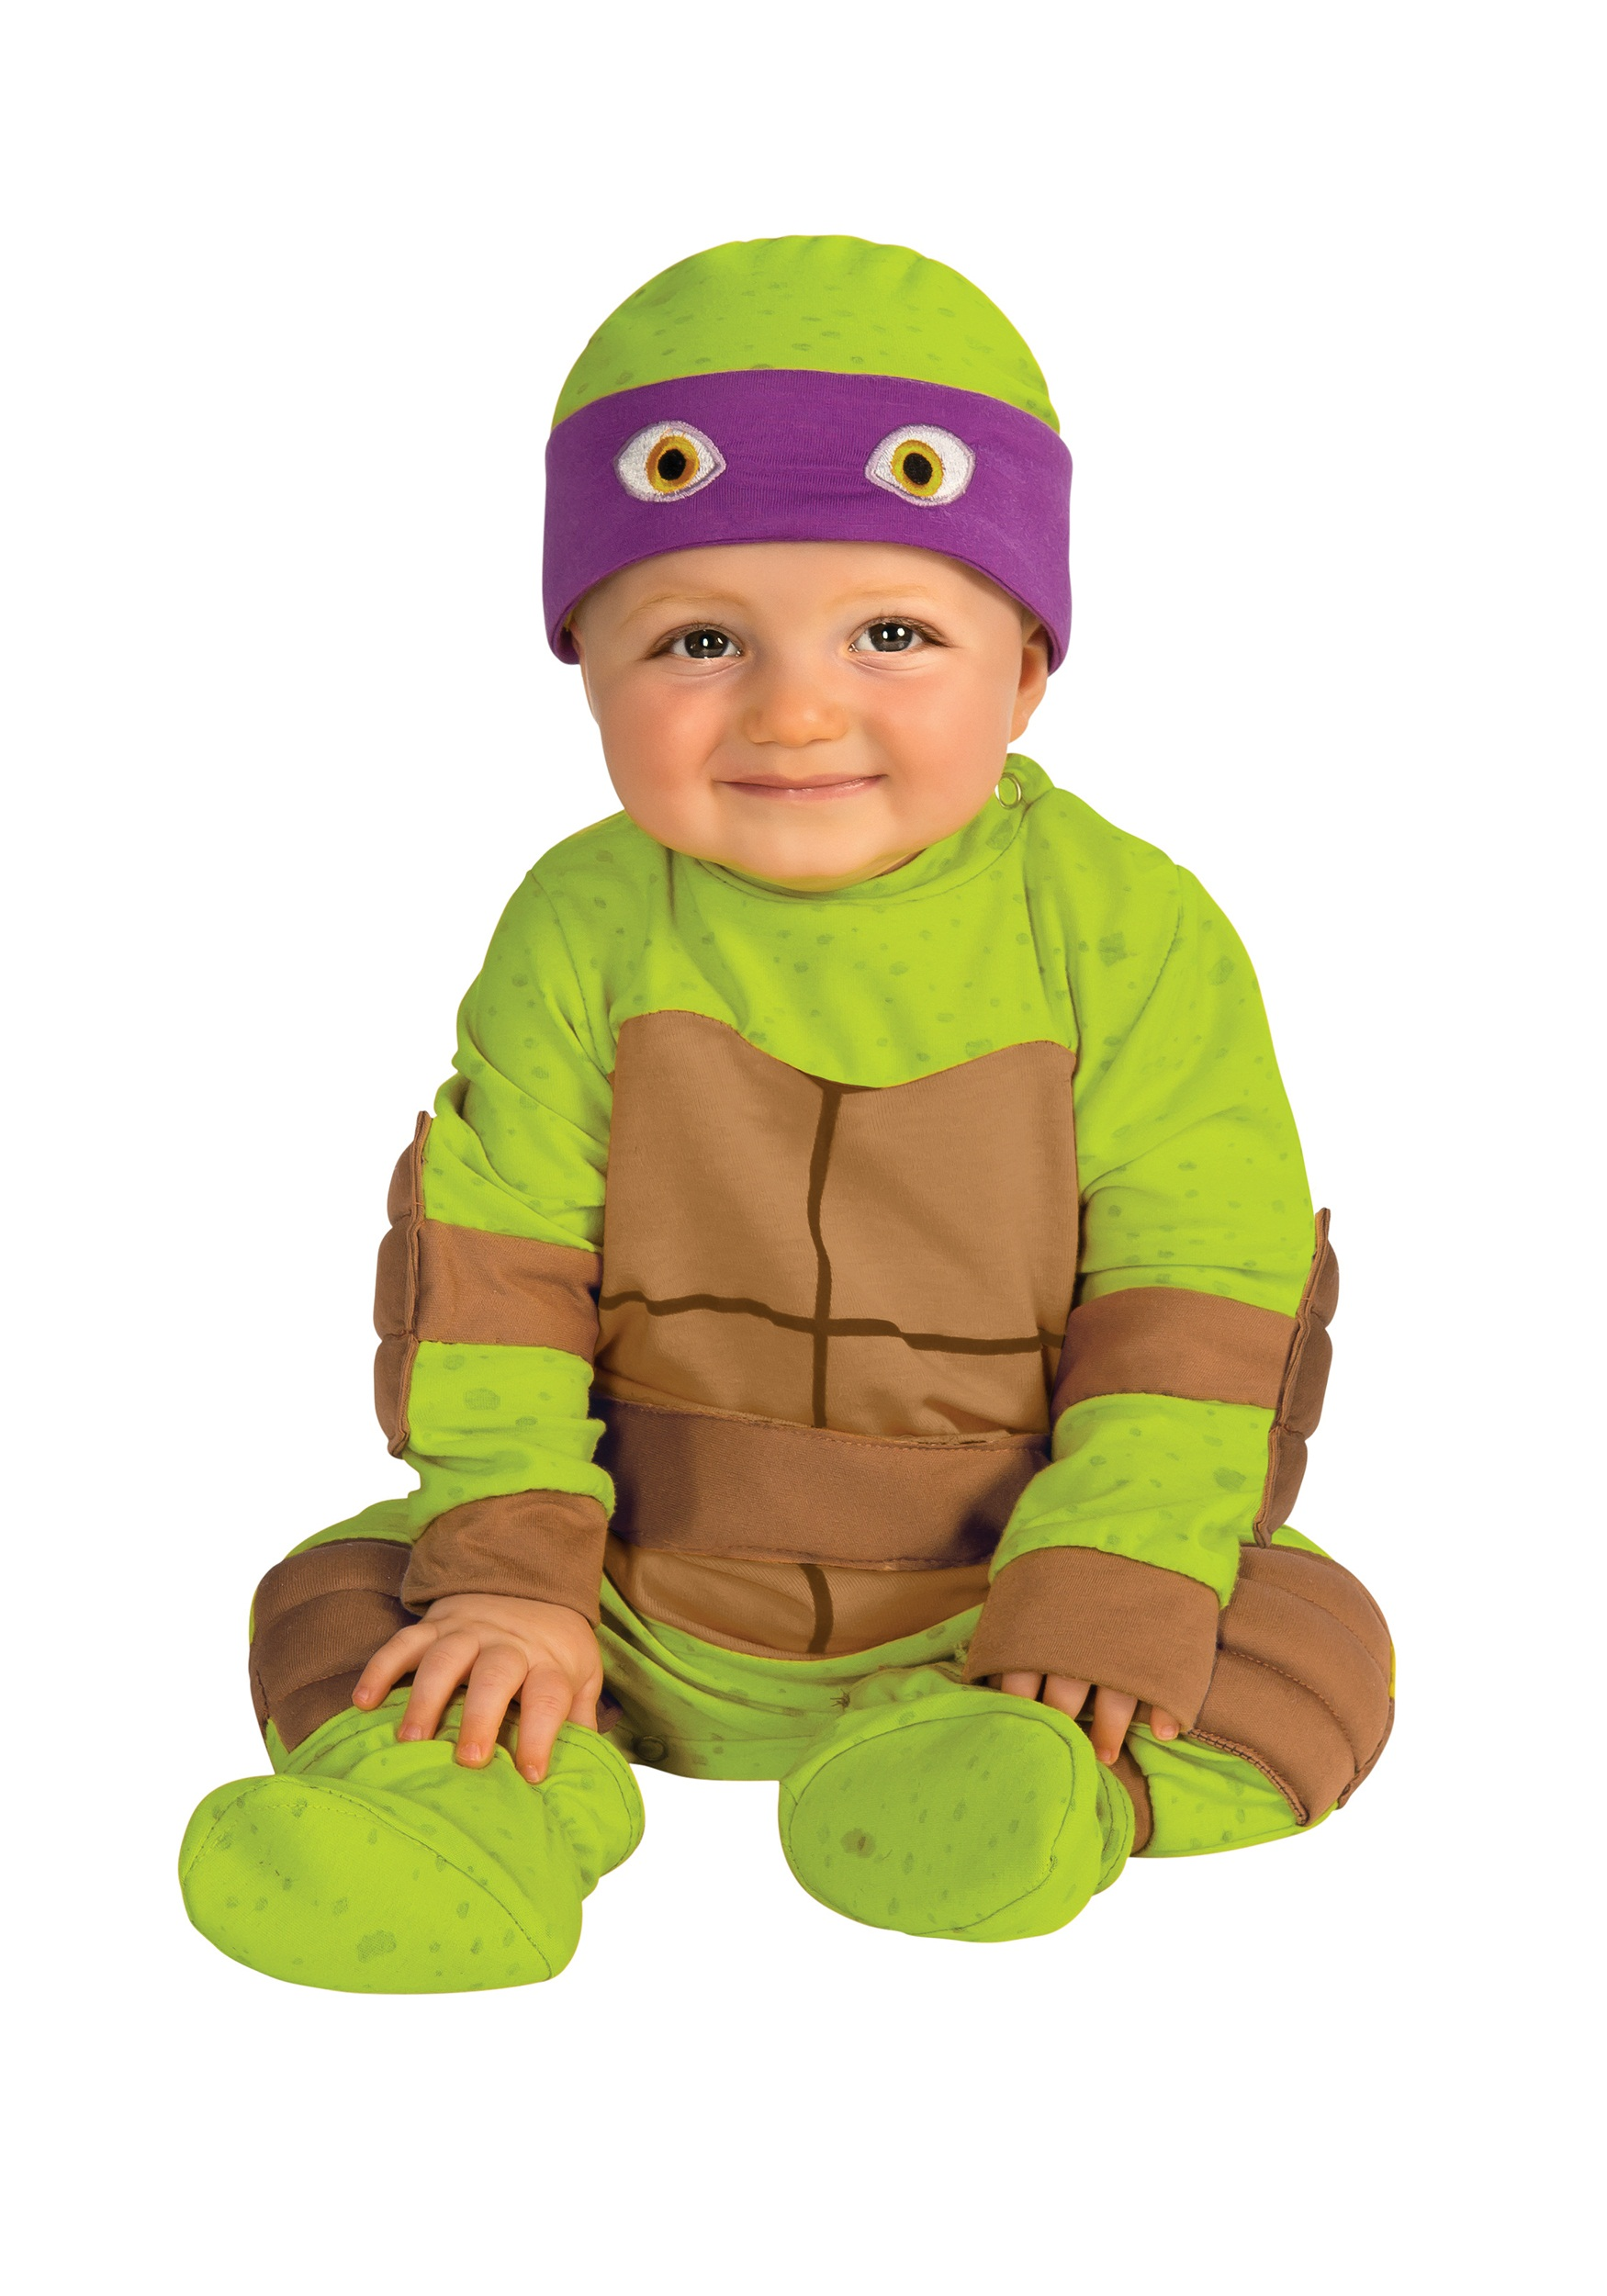 ... Infant Ninja Turtle Jumper Purple Mask ...  sc 1 st  Halloween Costumes & Infant Ninja Turtle Jumper